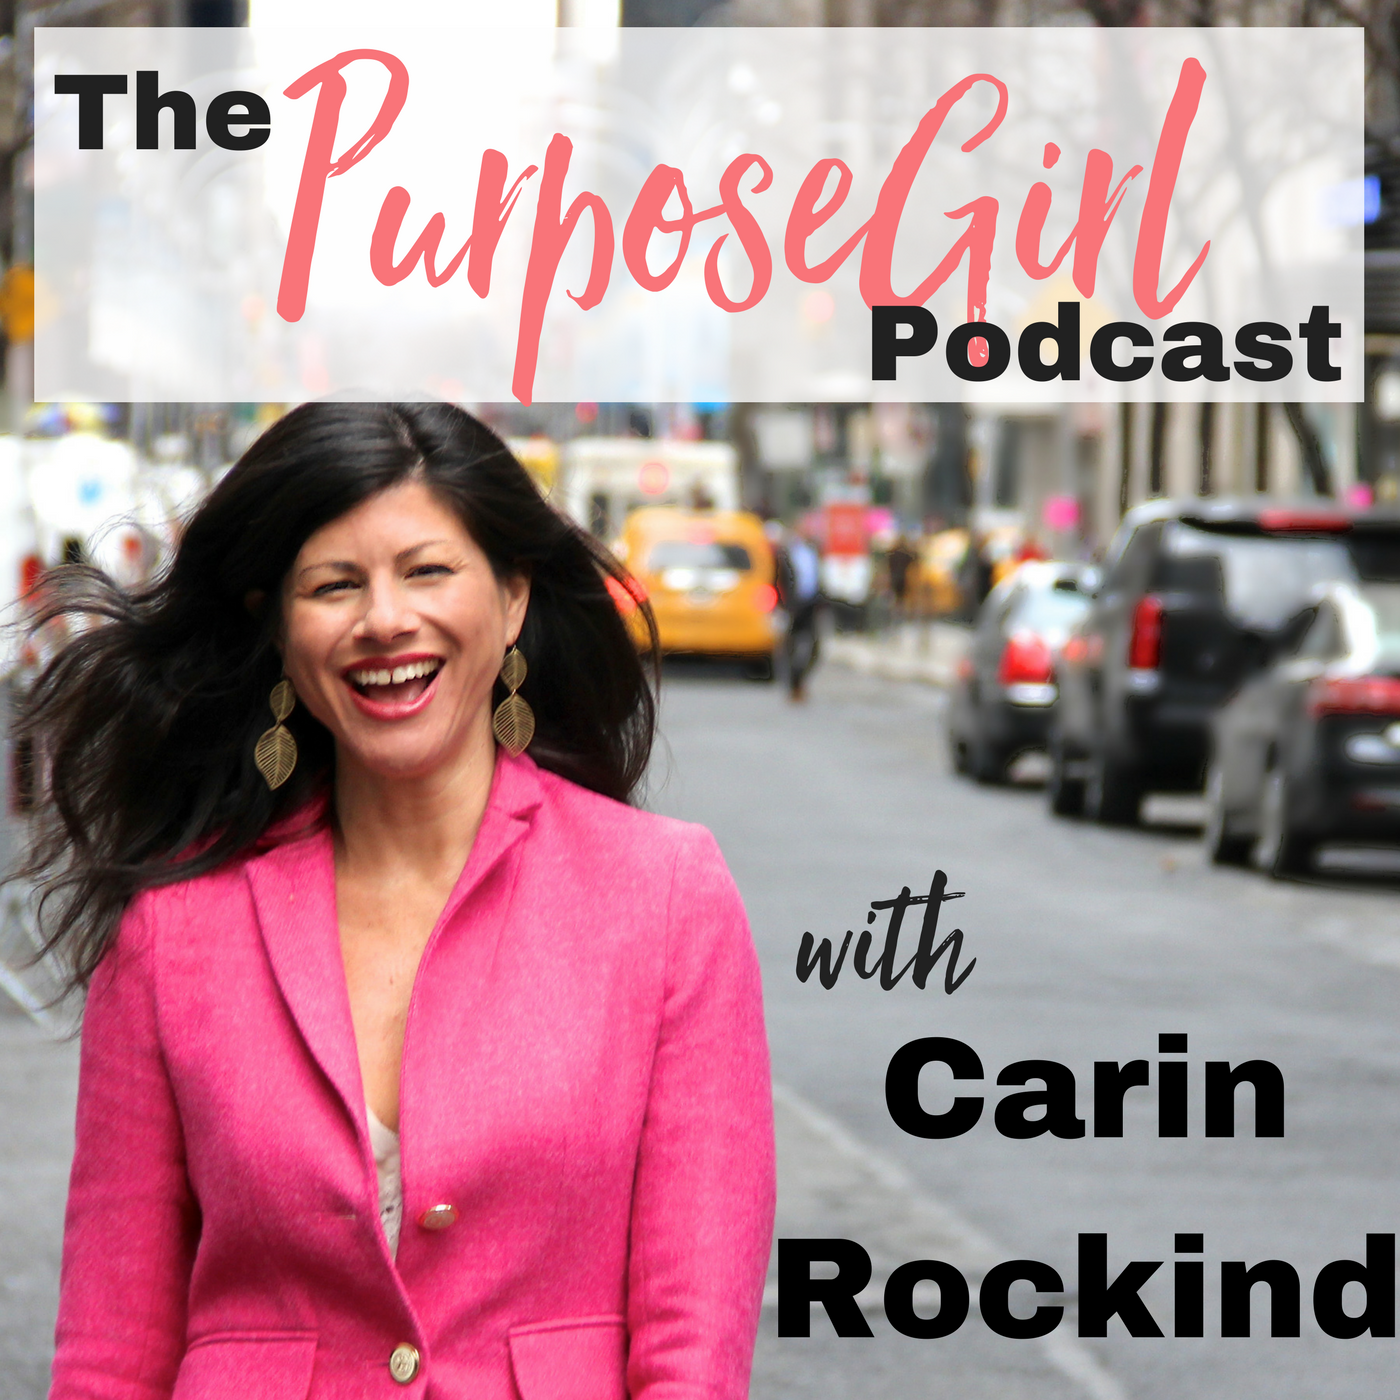 FYB COI 4 | PurposeGirl Podcast